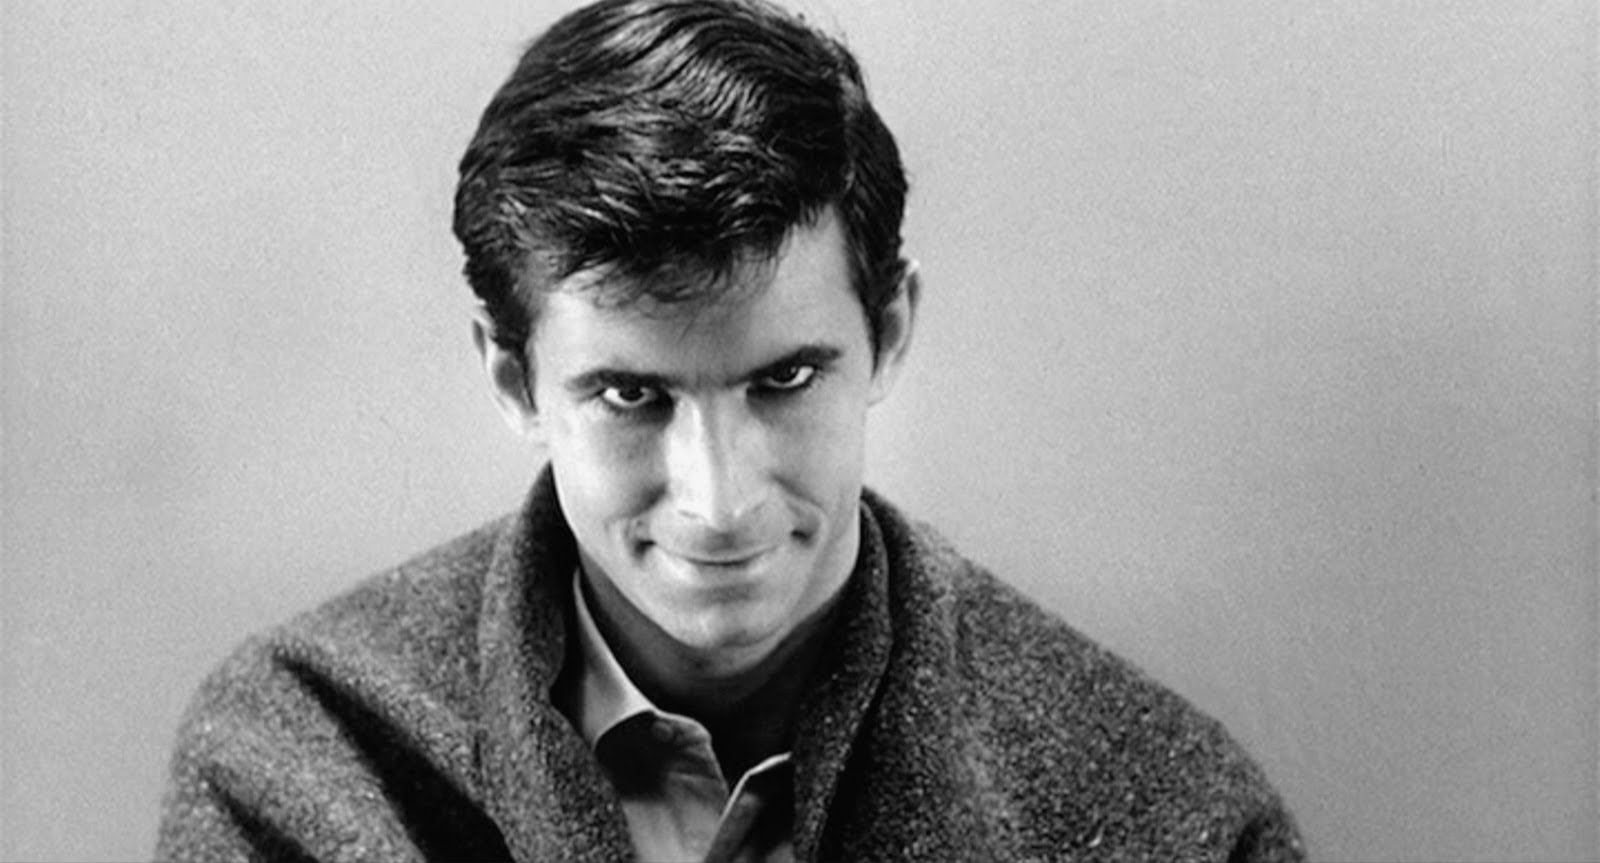 THE MOVIE ADDICT REVIEWS Psycho (1960)